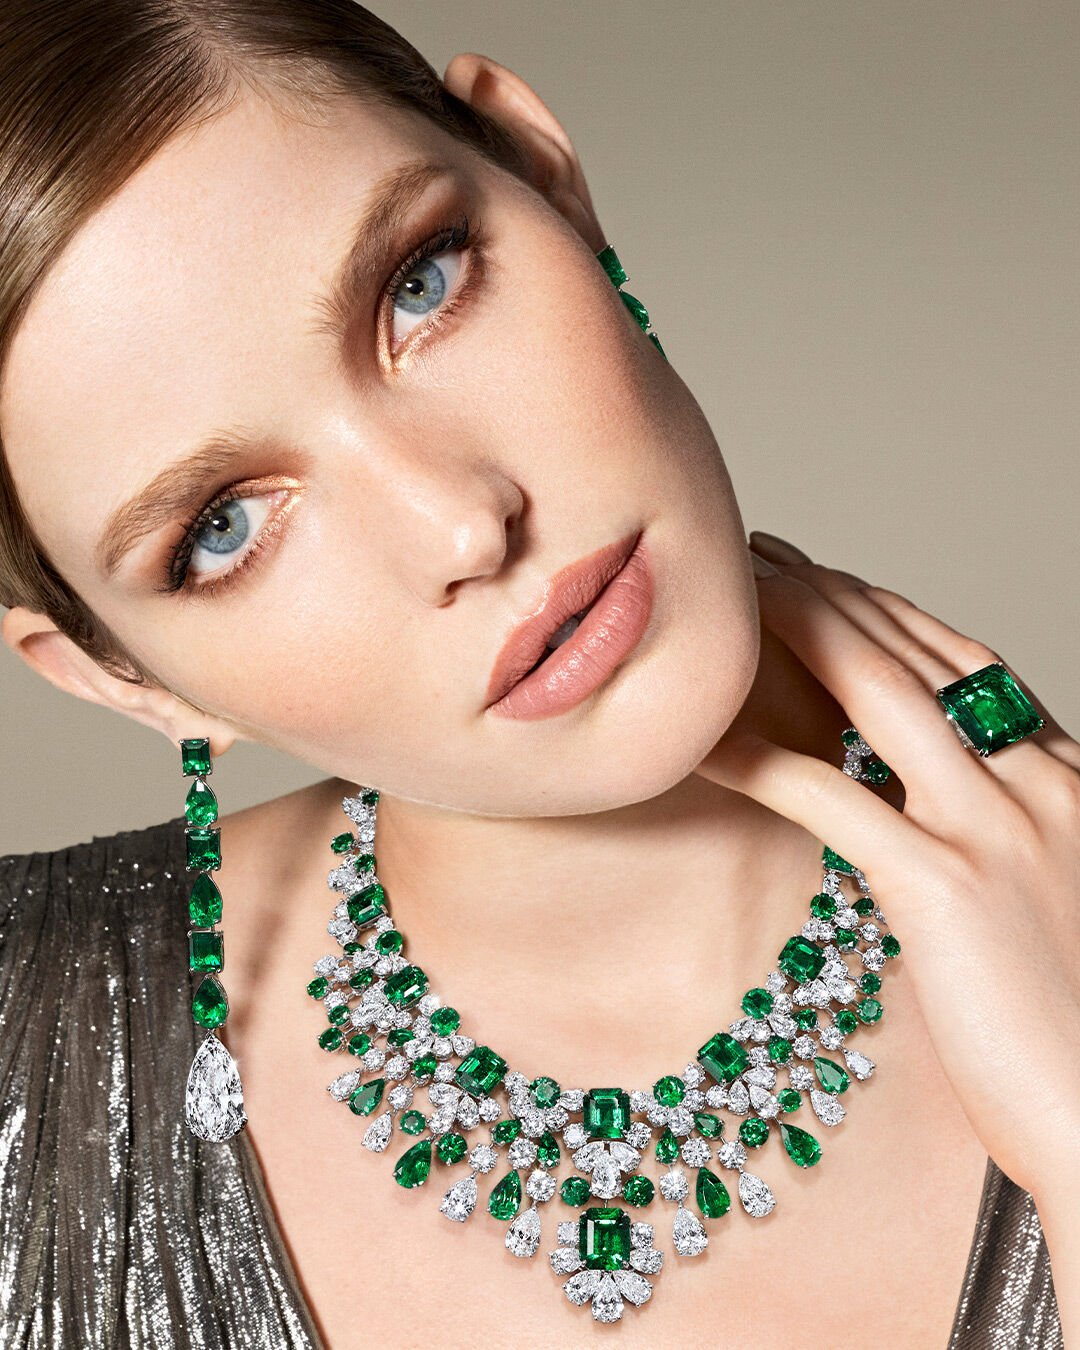 Model wars Graff emerald and white diamond high jewellery